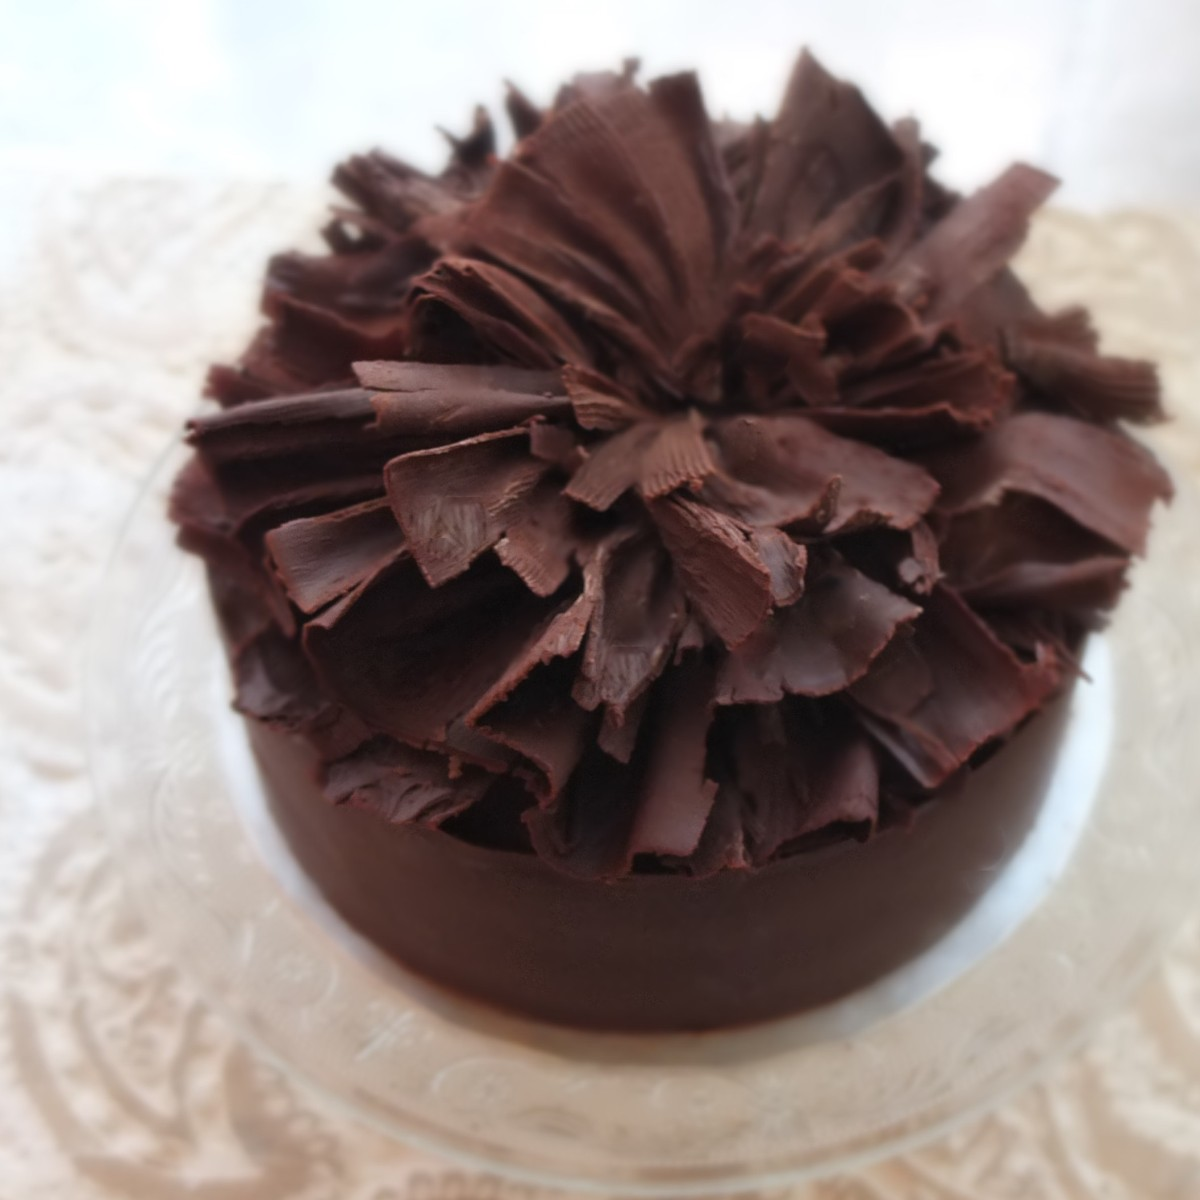 The smaller Feuille d'Automne recipe!  Lenôtre's classic dark chocolate mousse and meringue cake!